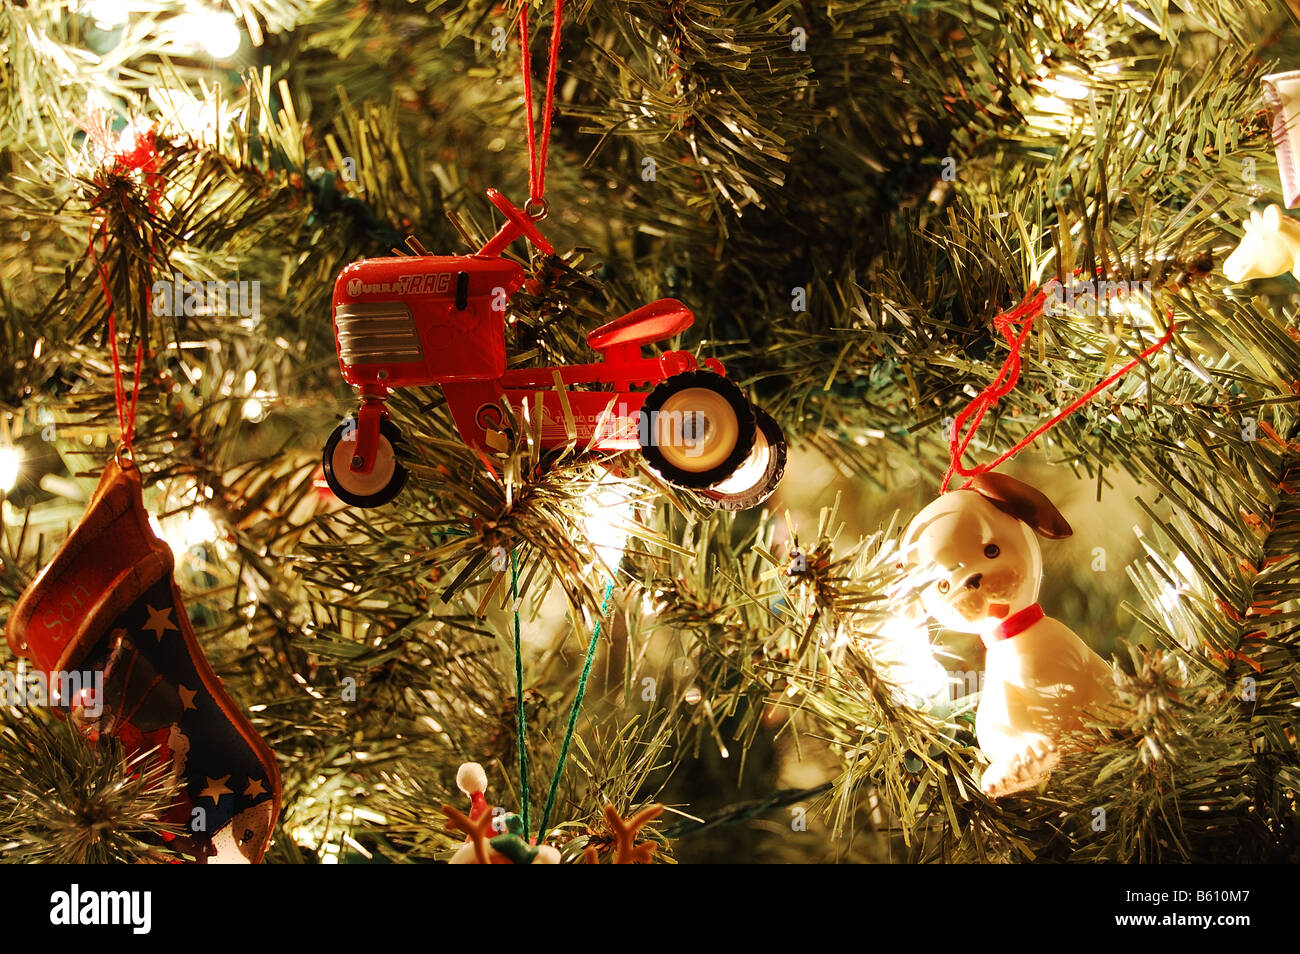 Christmas Tree With Ornaments And White Lights Close Up Dog Tractor Ornament